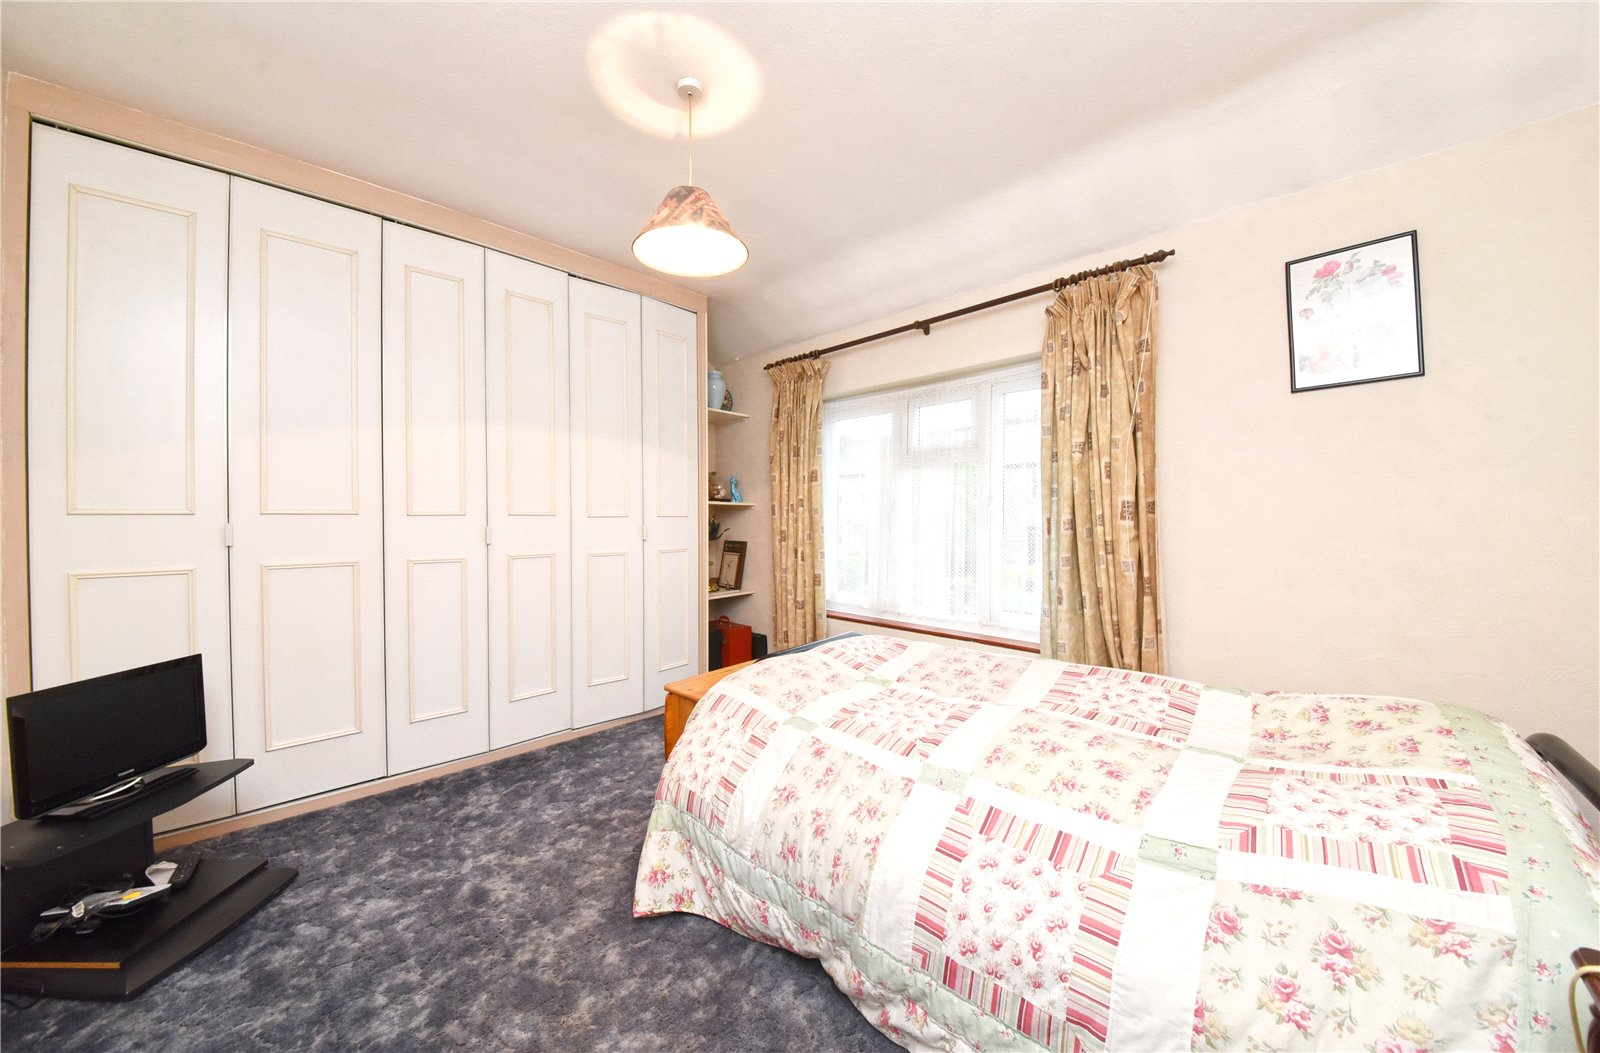 3 bed house for sale in Whetstone, N20 0DG 8